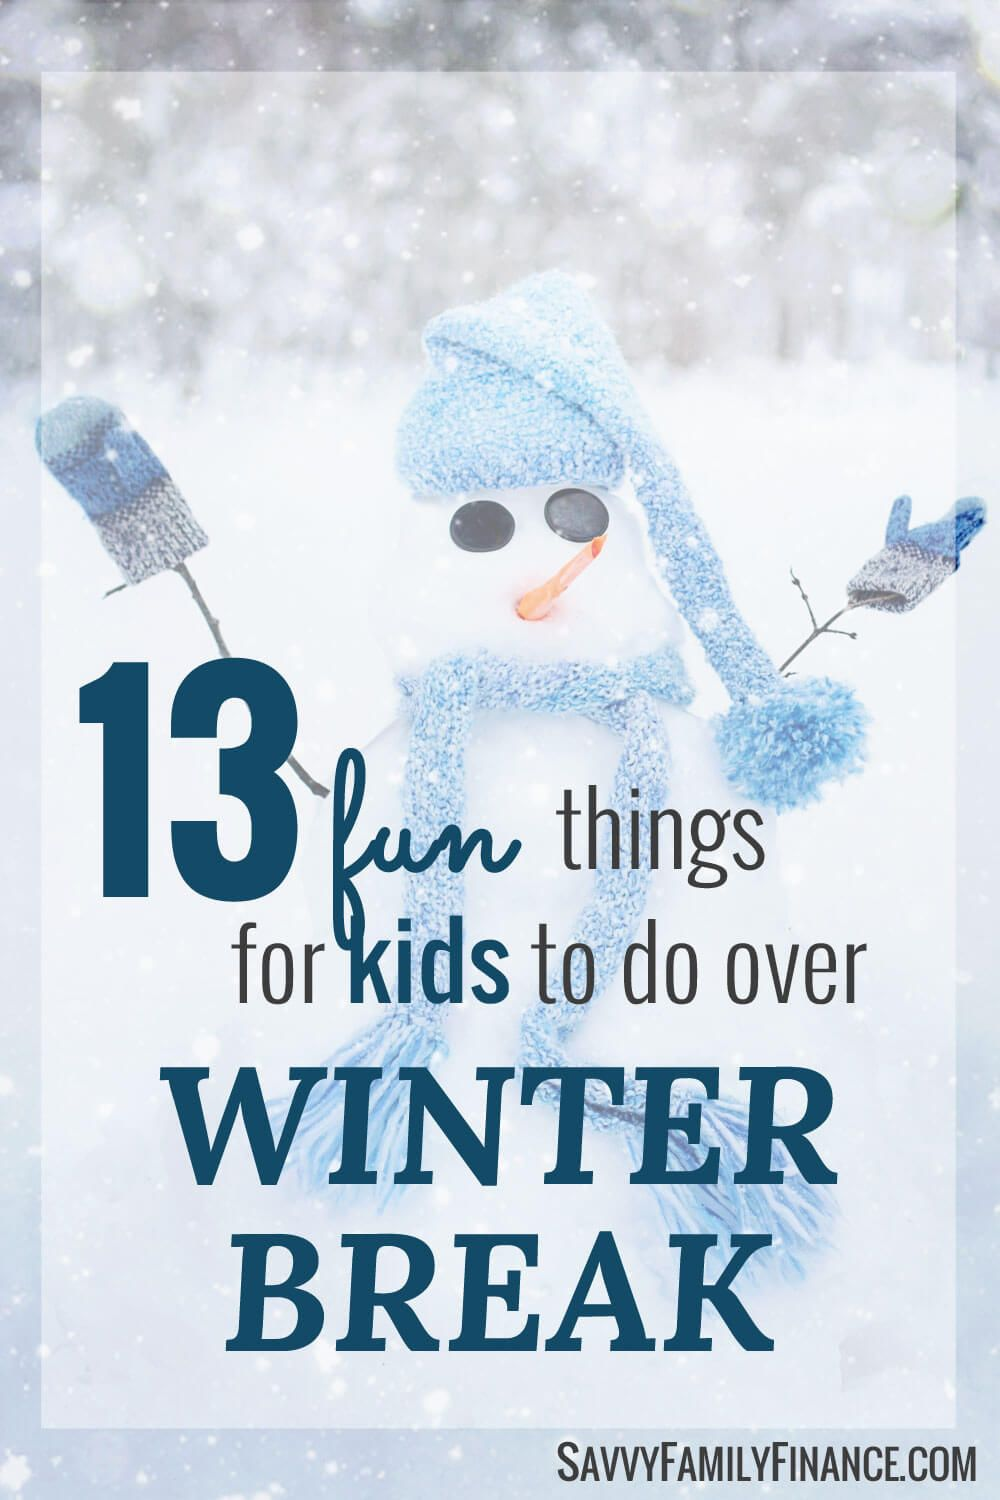 13 Fun Things for Kids to Do Over Winter Break | Savvy Family Finance